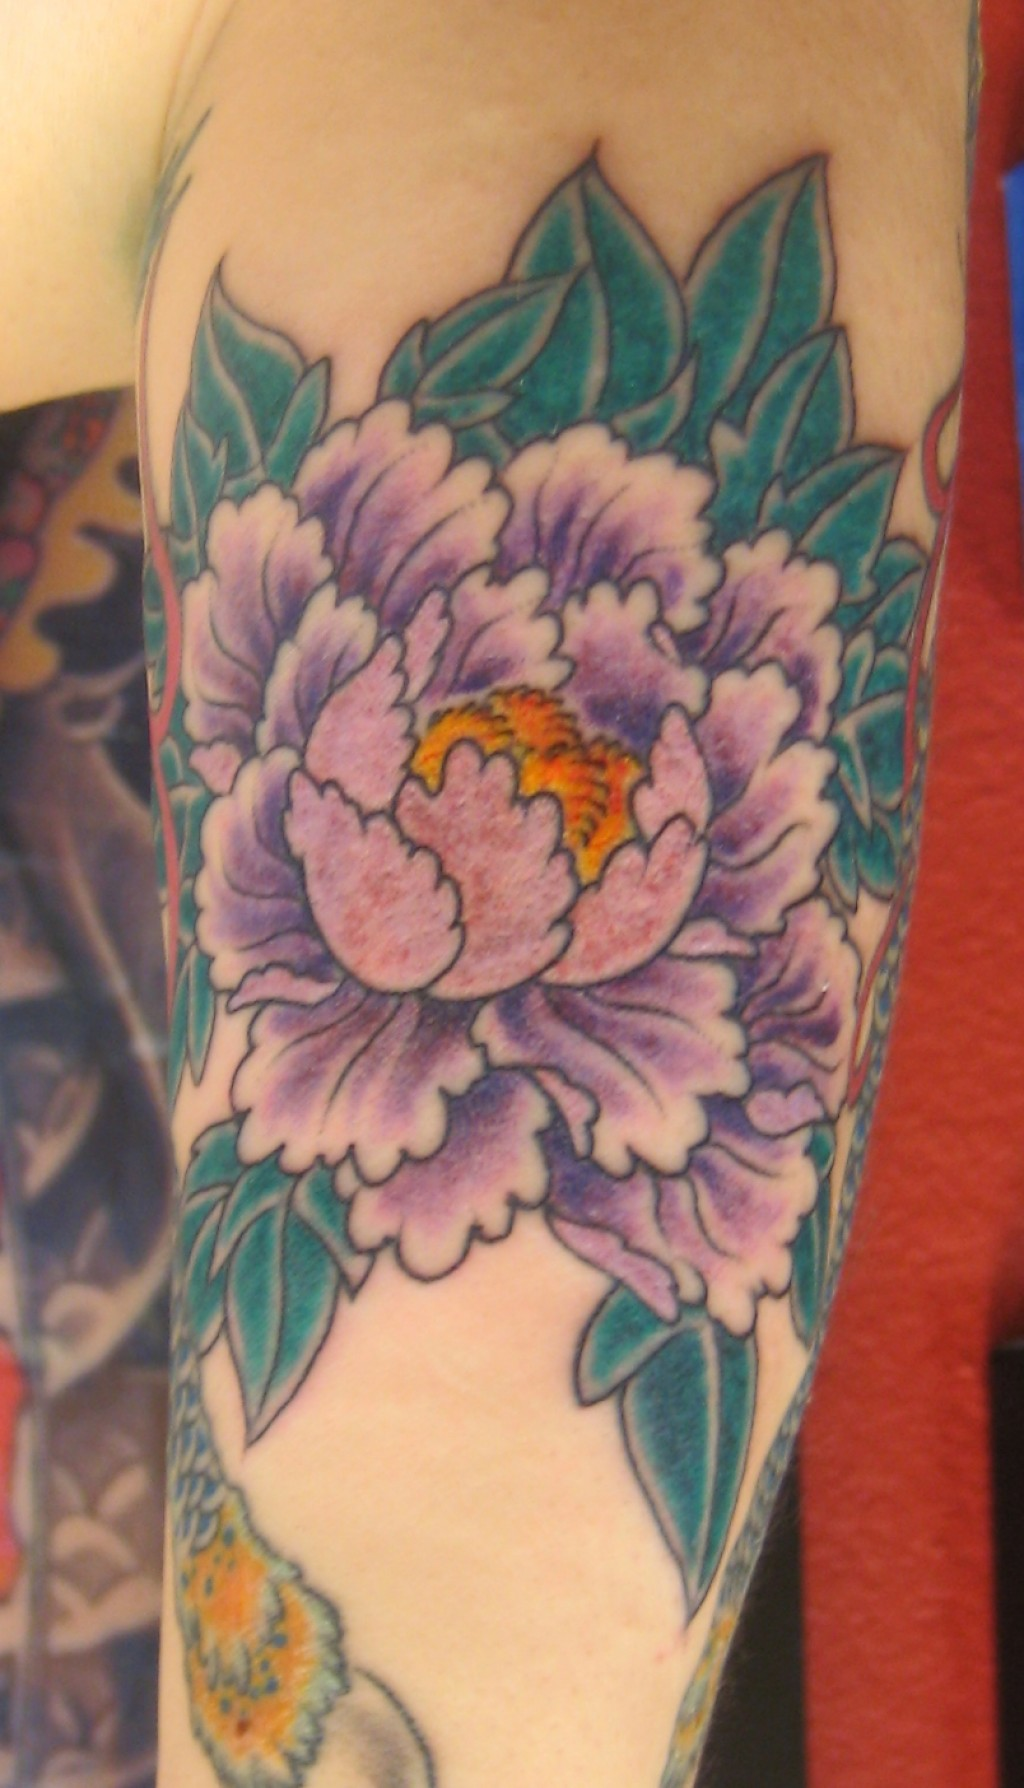 Peony Flower Tattoo: Peony Flower Tattoo Designs And Meanings